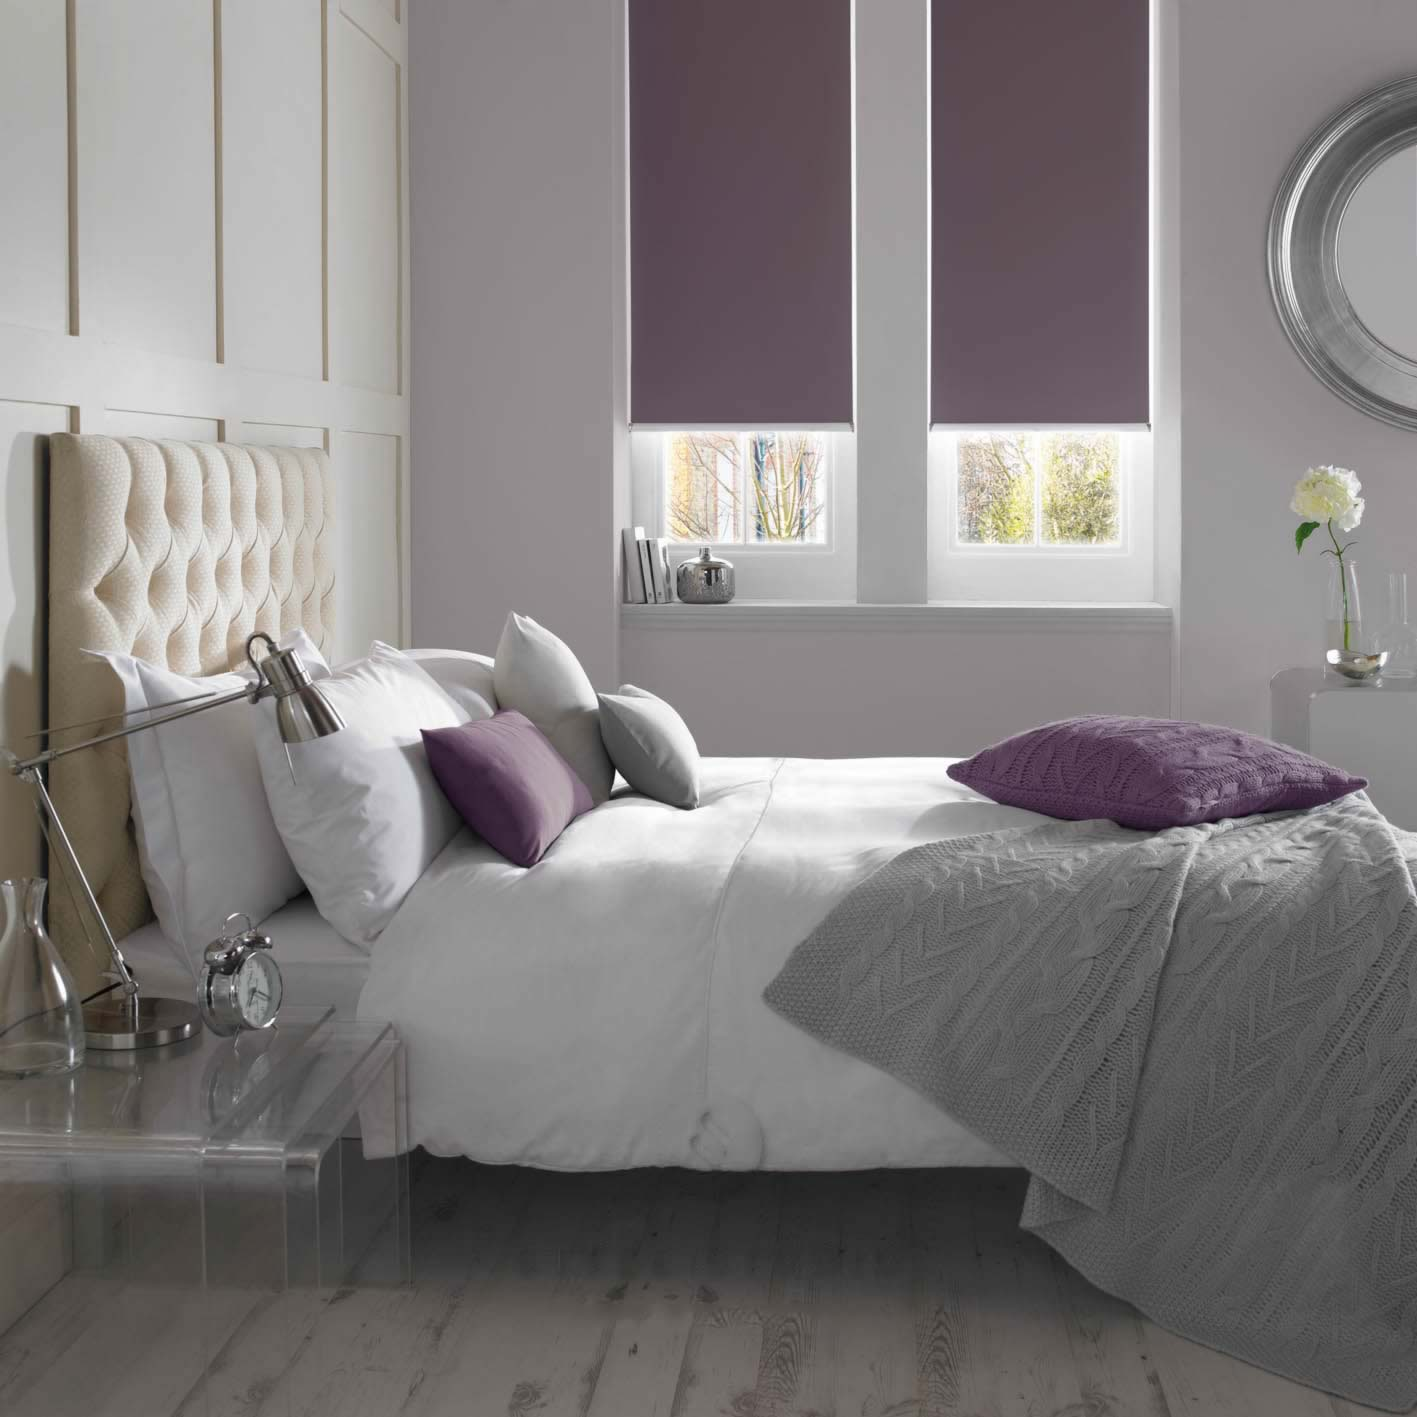 Senses Roller Blinds - Banlight BO Mulberry